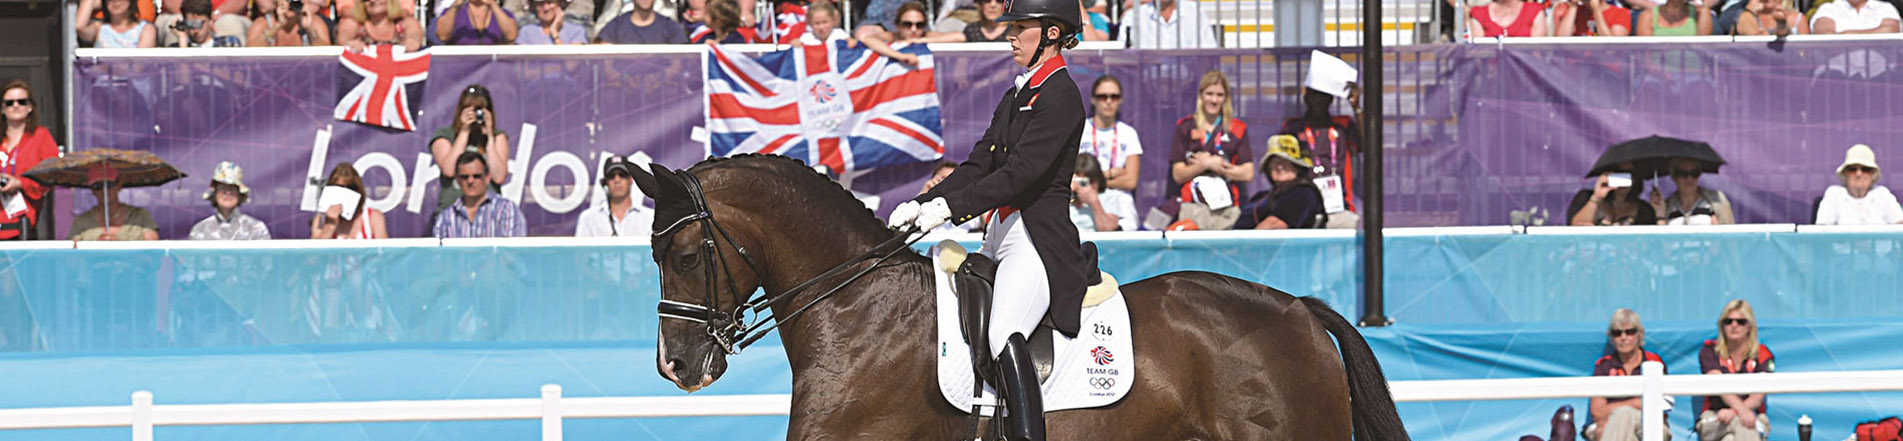 Olympic Games 2016 Dressage